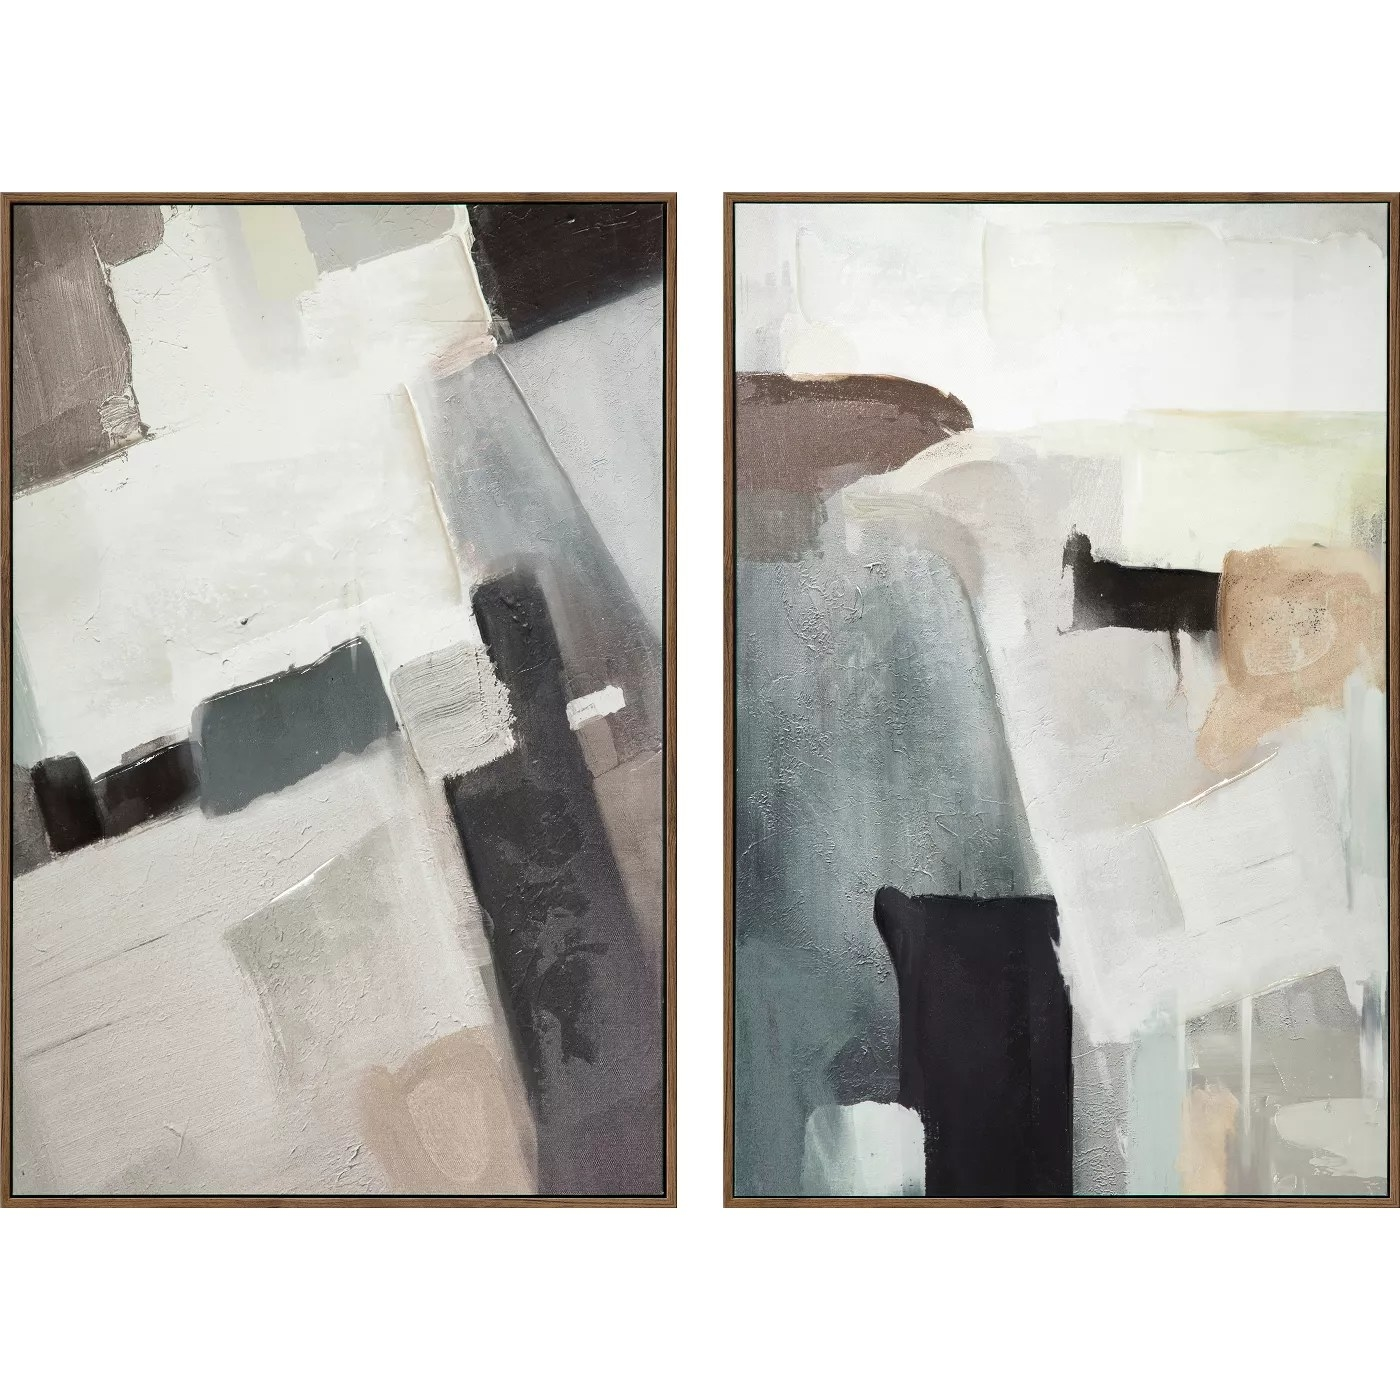 The abstract canvases